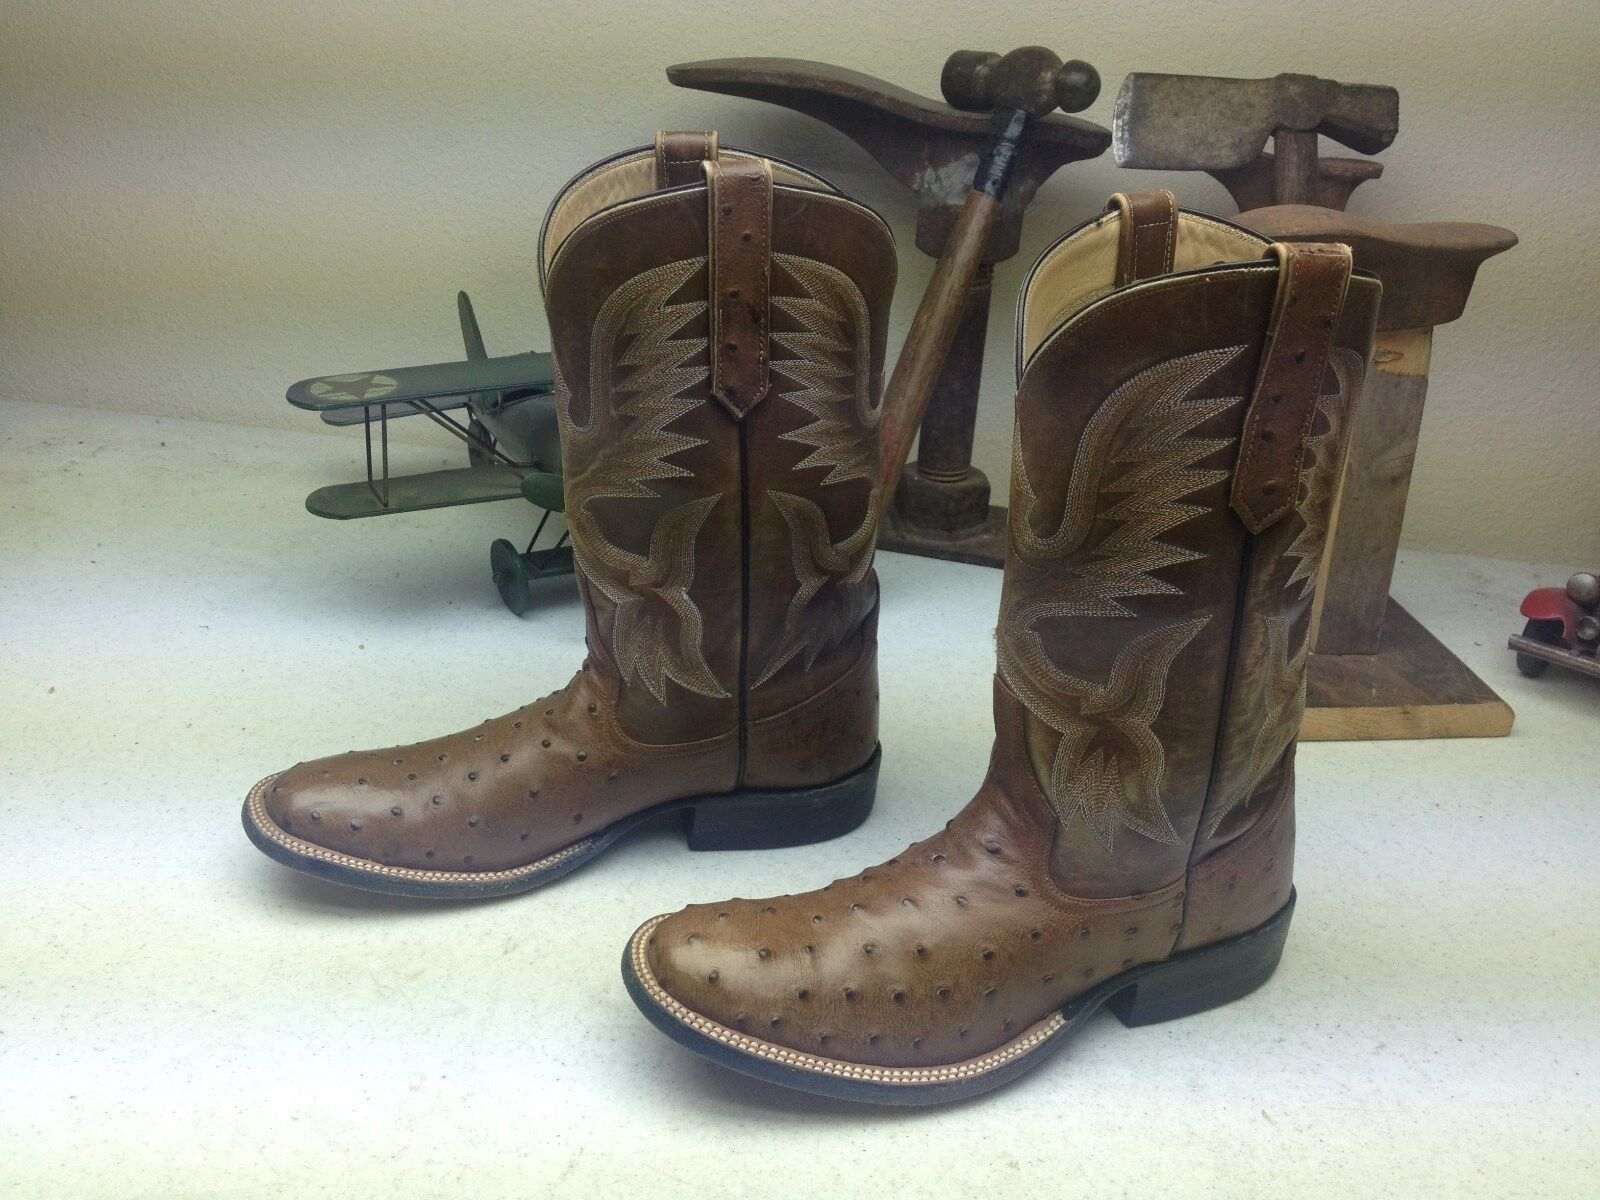 RIOS OF MERCEDES WETSREN DISTRESSED OSTRICH LEATHER ENGINEER DANCING BOOTS 6 A